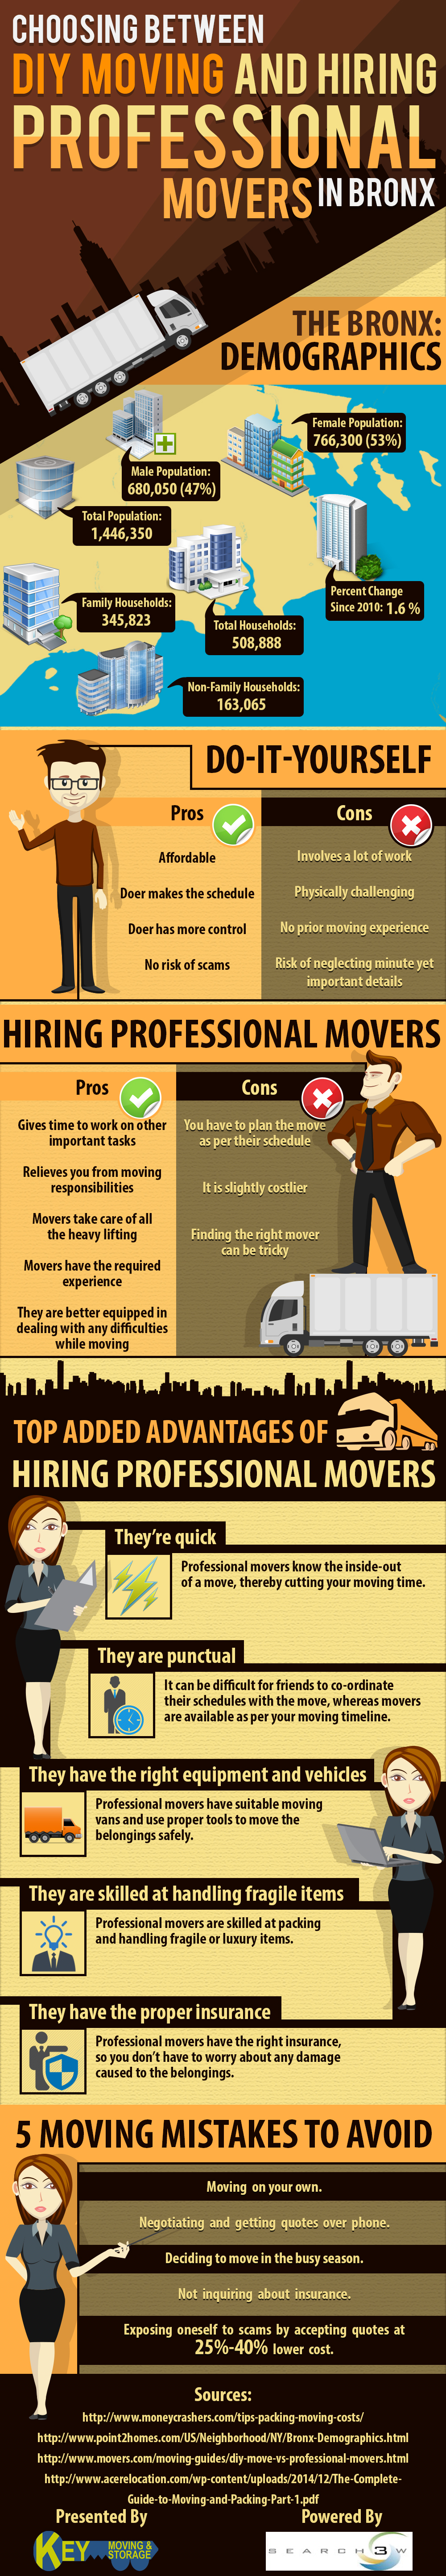 DIY Moving or Hiring Professional Bronx Movers